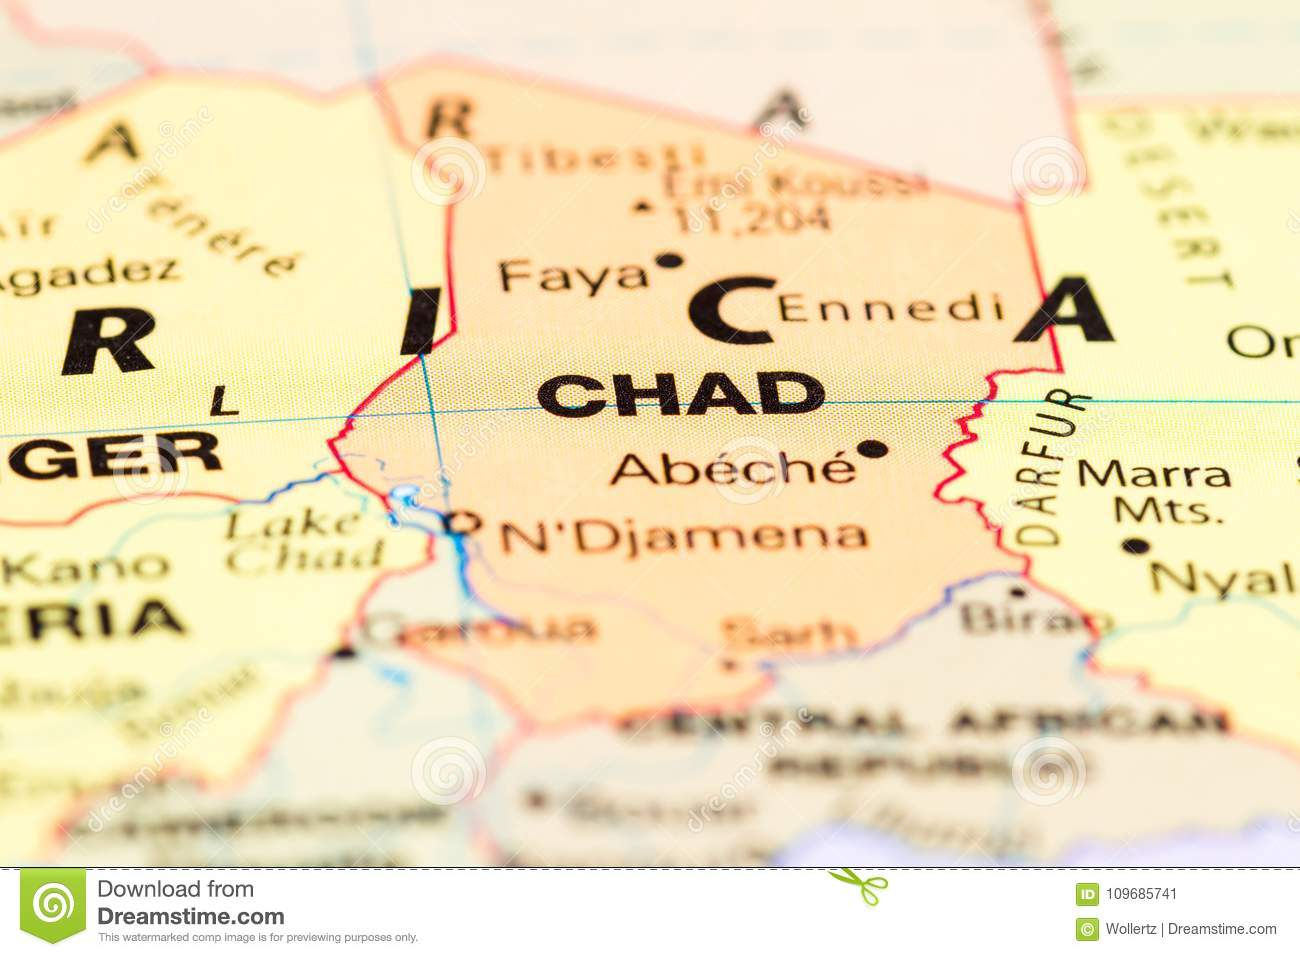 Chad on a map stock image. Image of flying, africa, worldly - 109685741